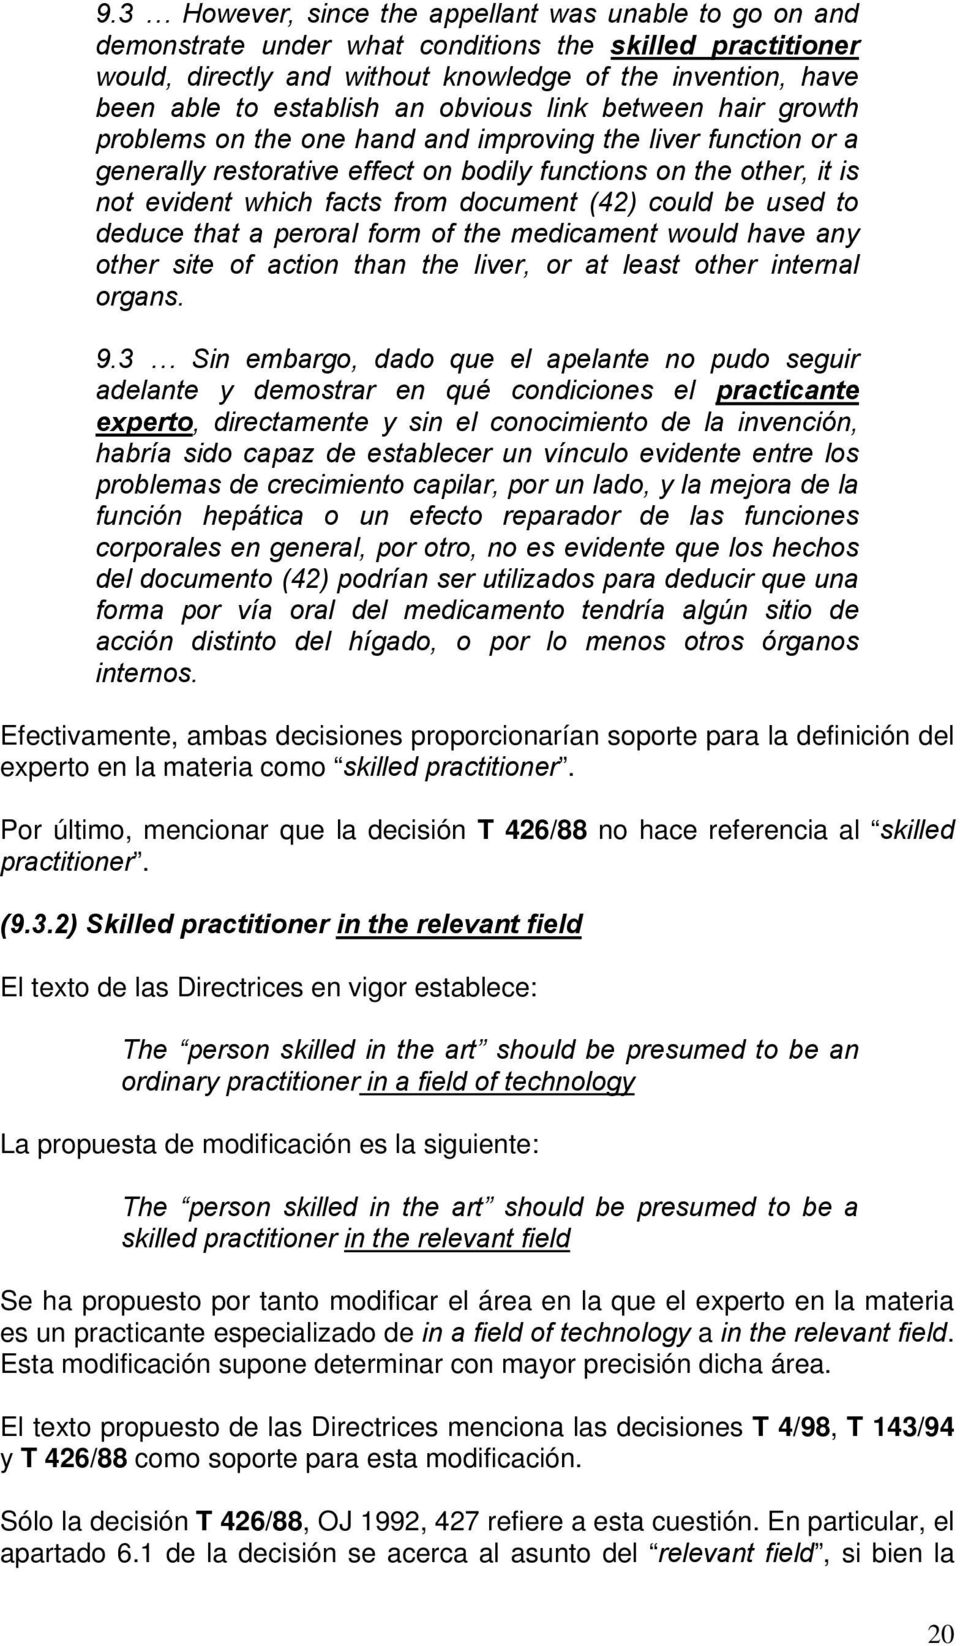 document (42) could be used to deduce that a peroral form of the medicament would have any other site of action than the liver, or at least other internal organs. 9.